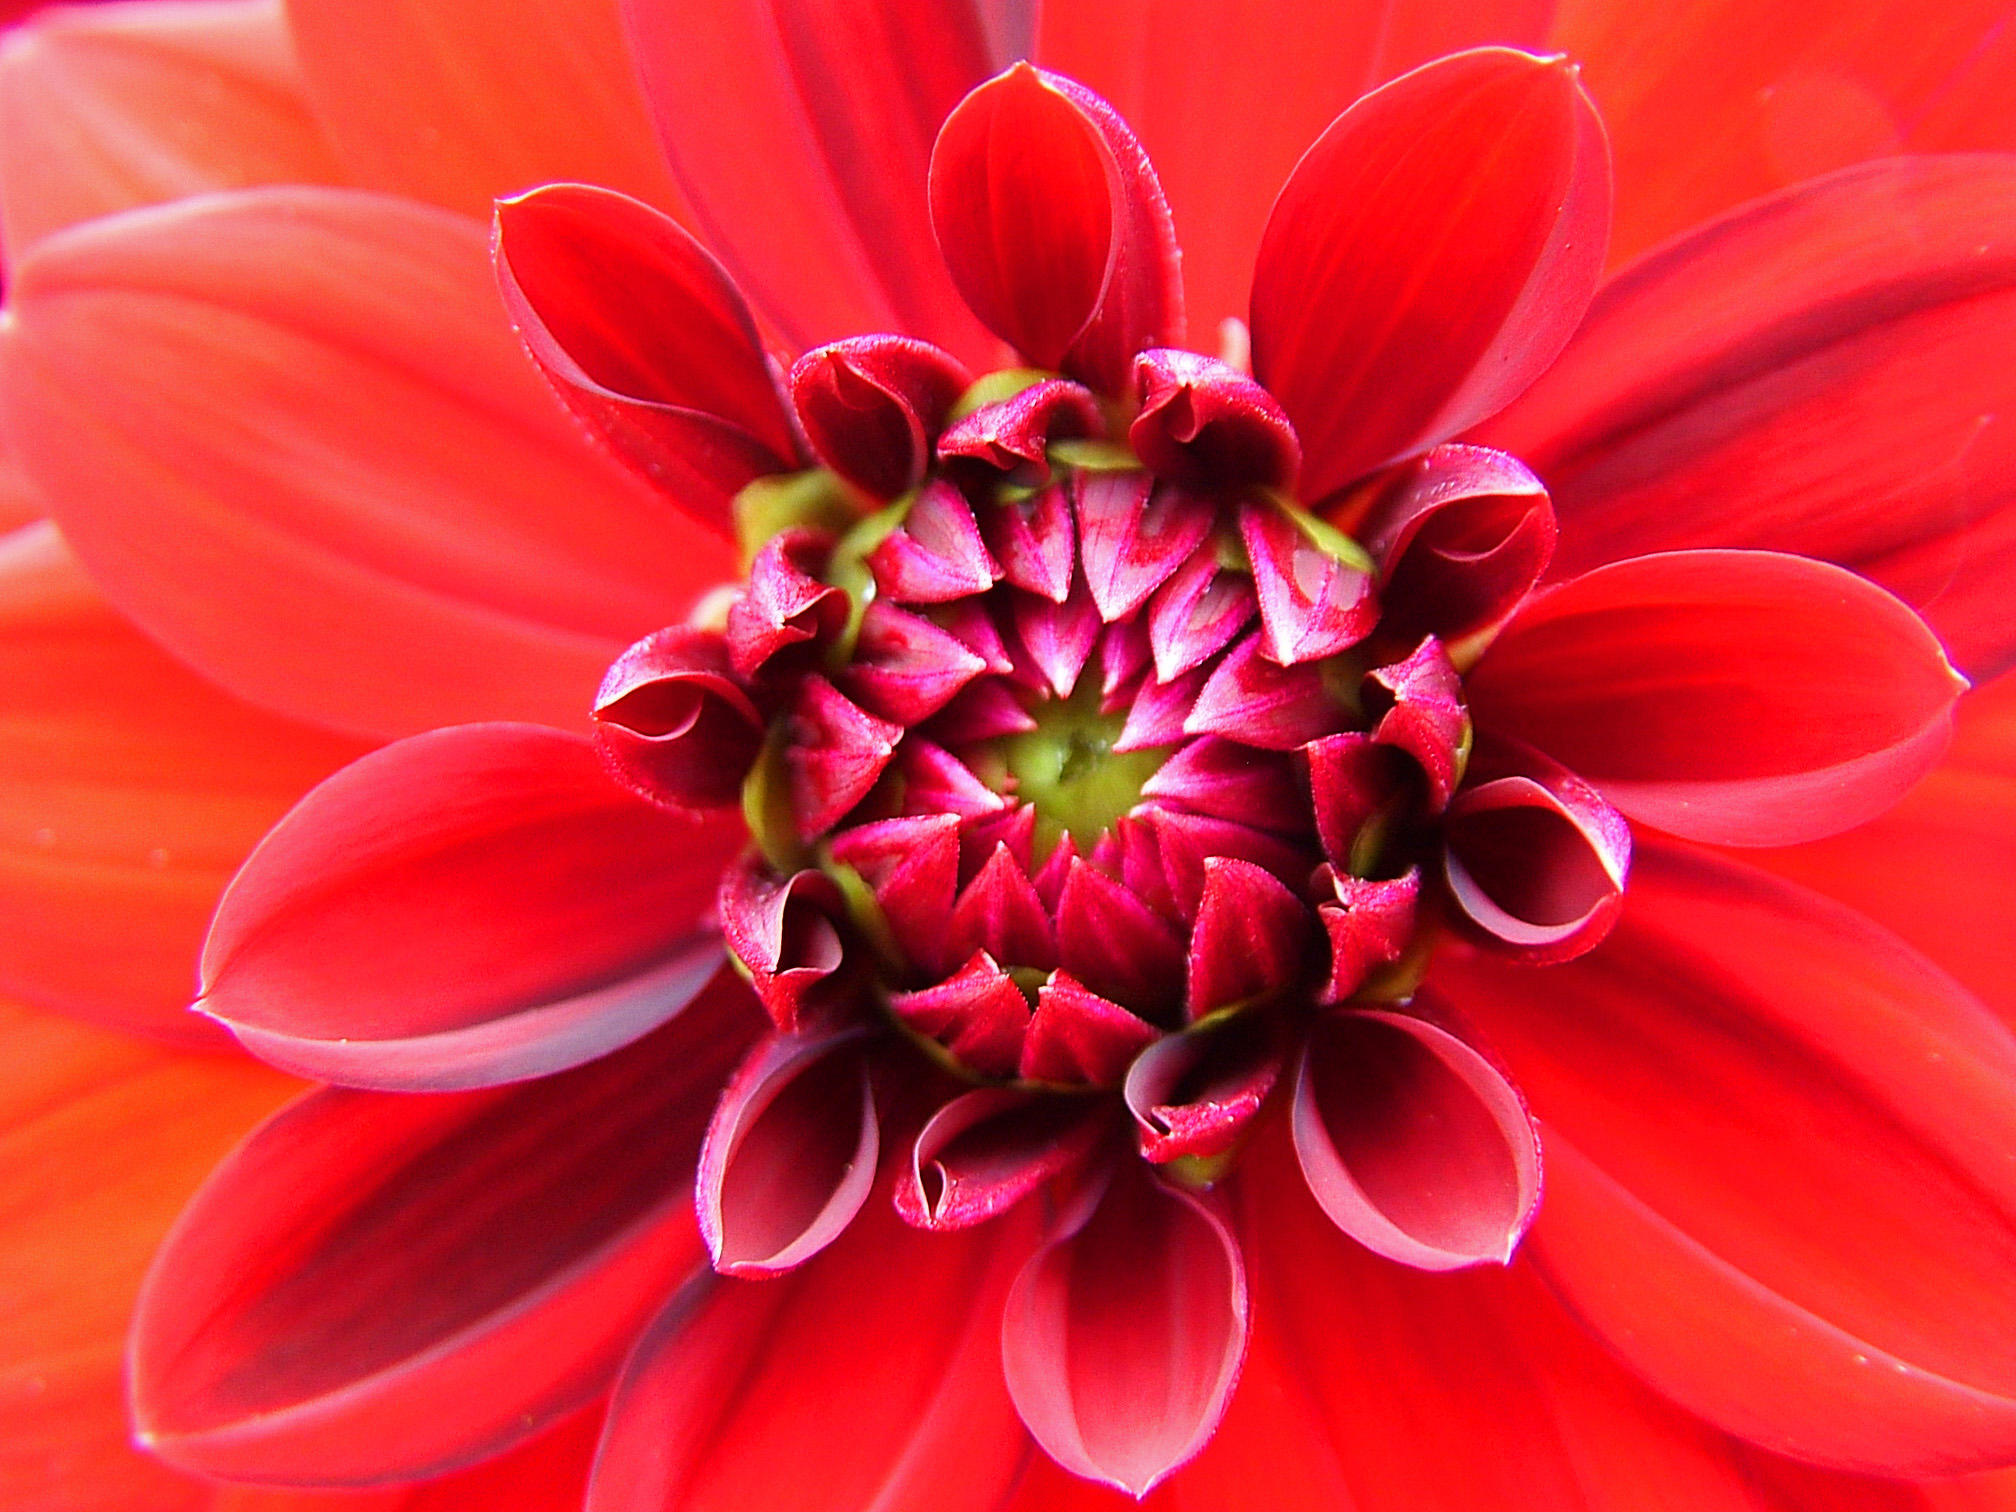 Chrysanthemum flower facts